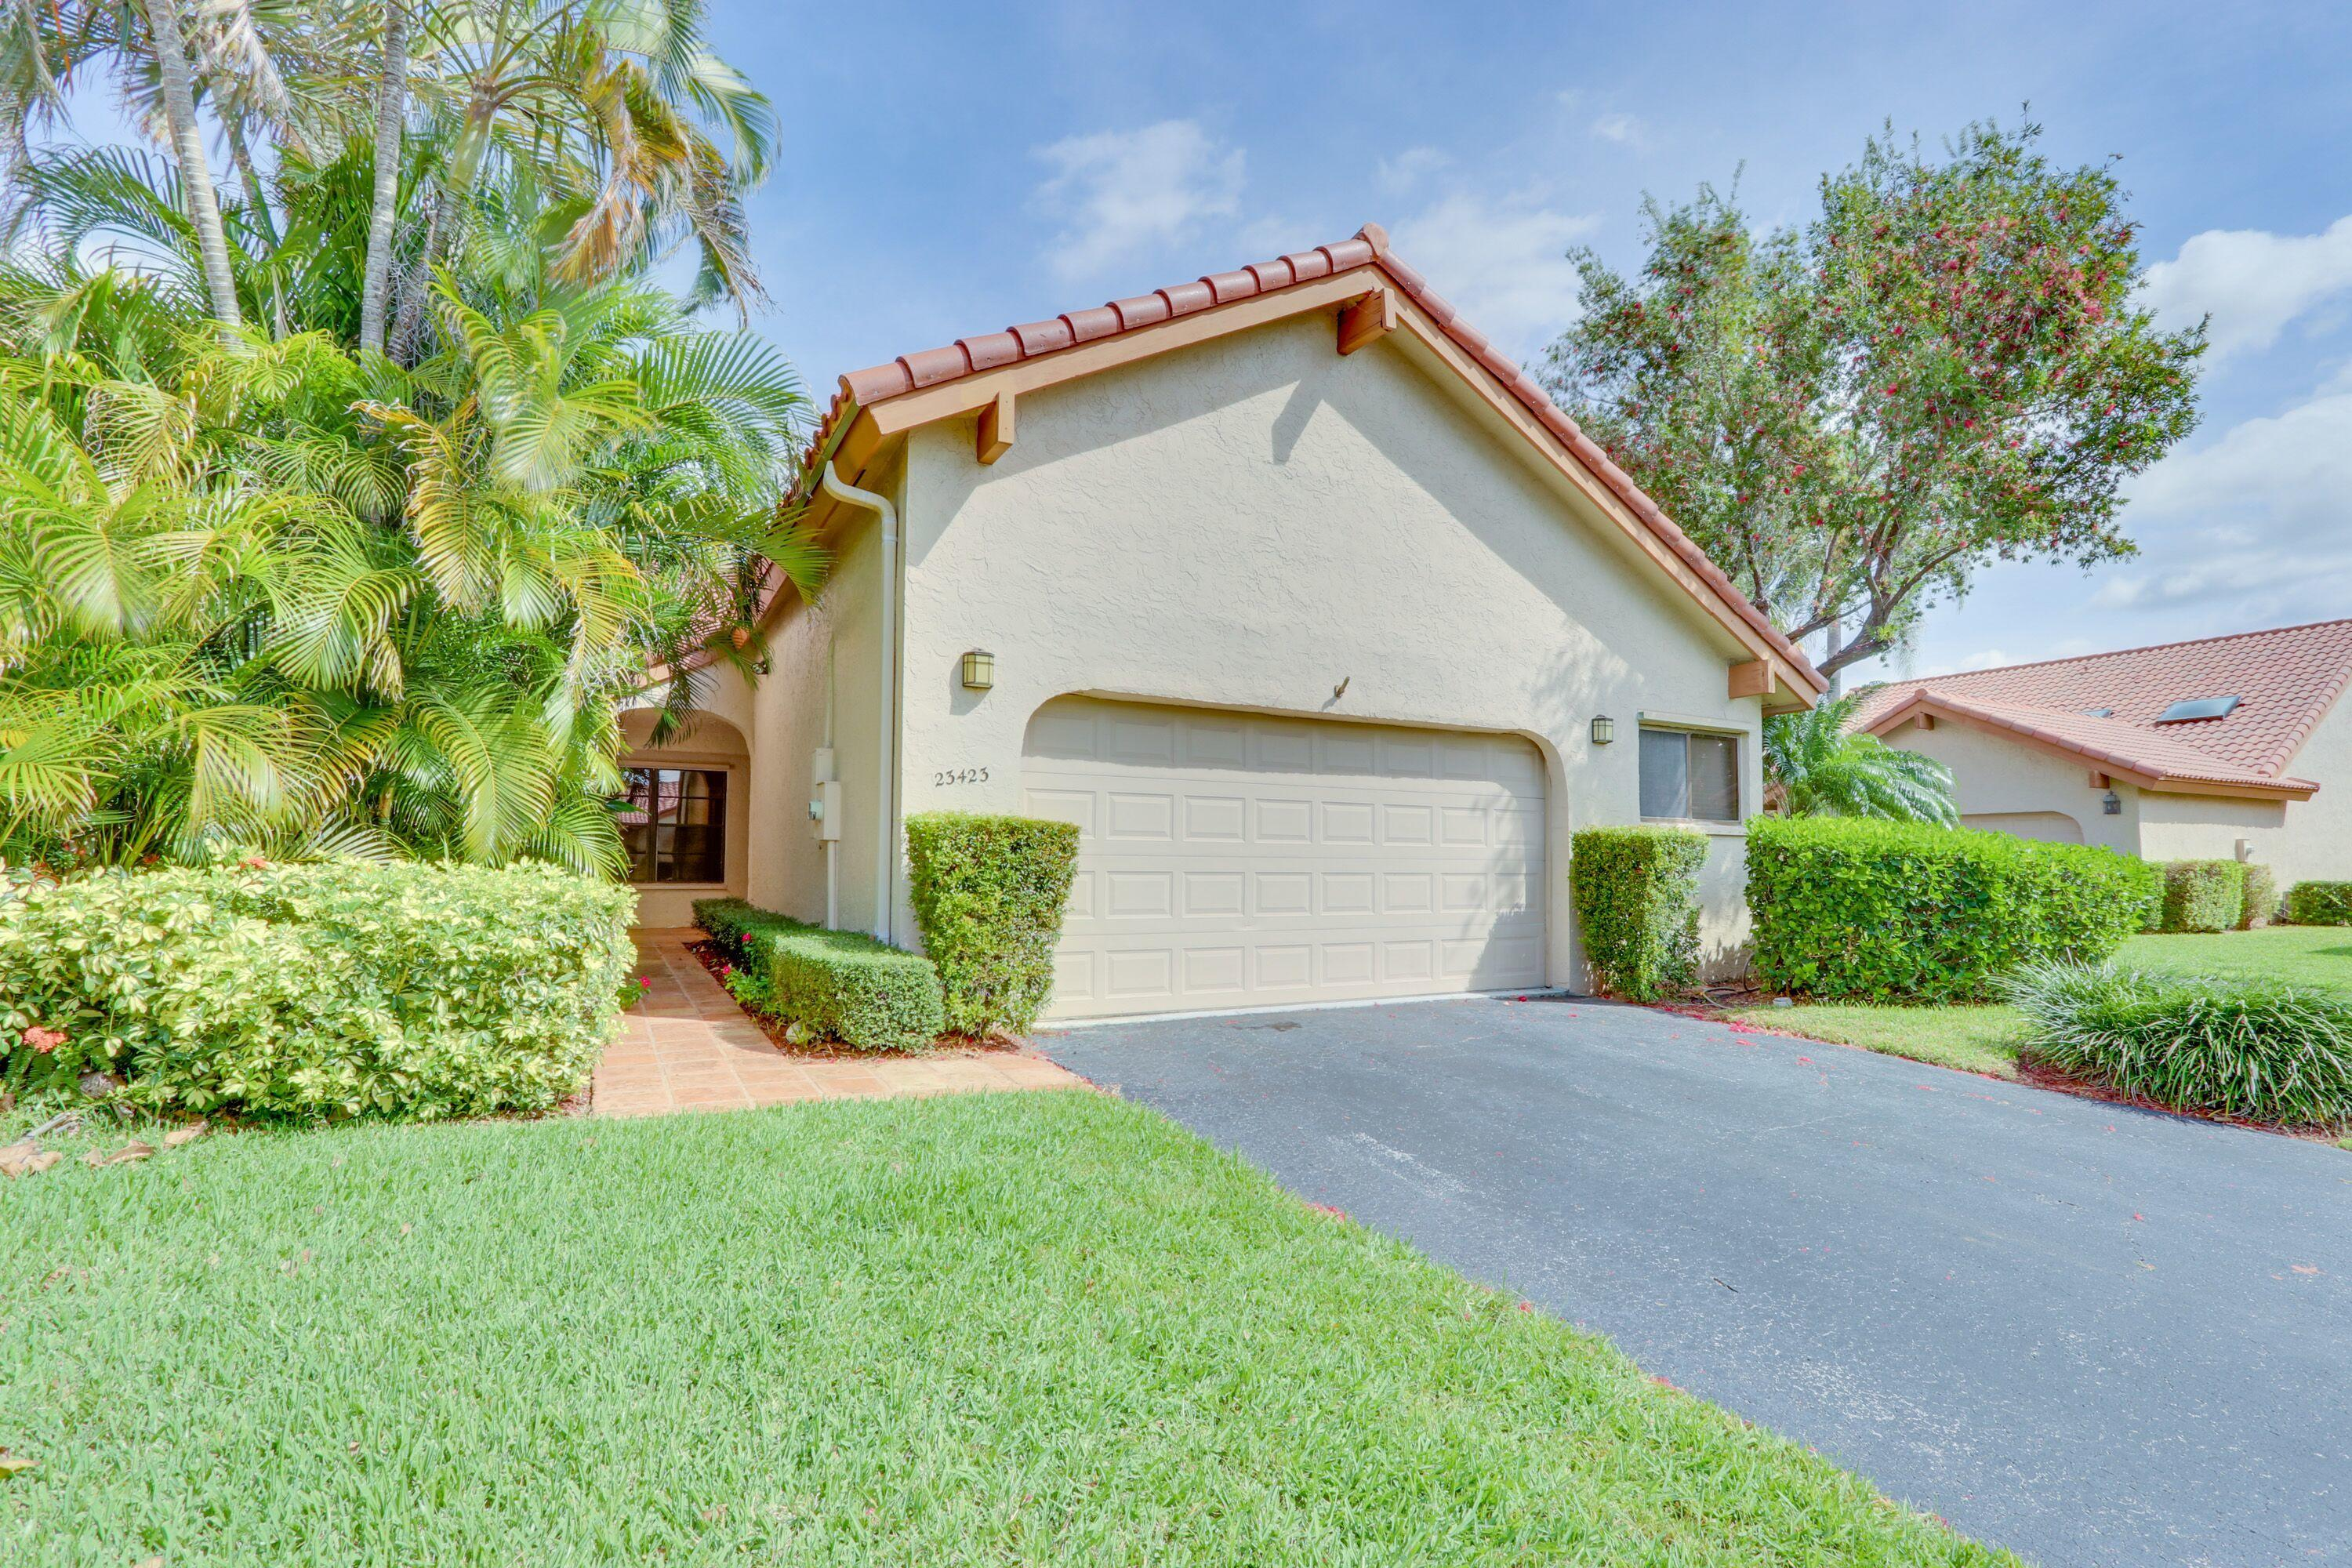 Home for sale in Waterside Boca Raton Florida